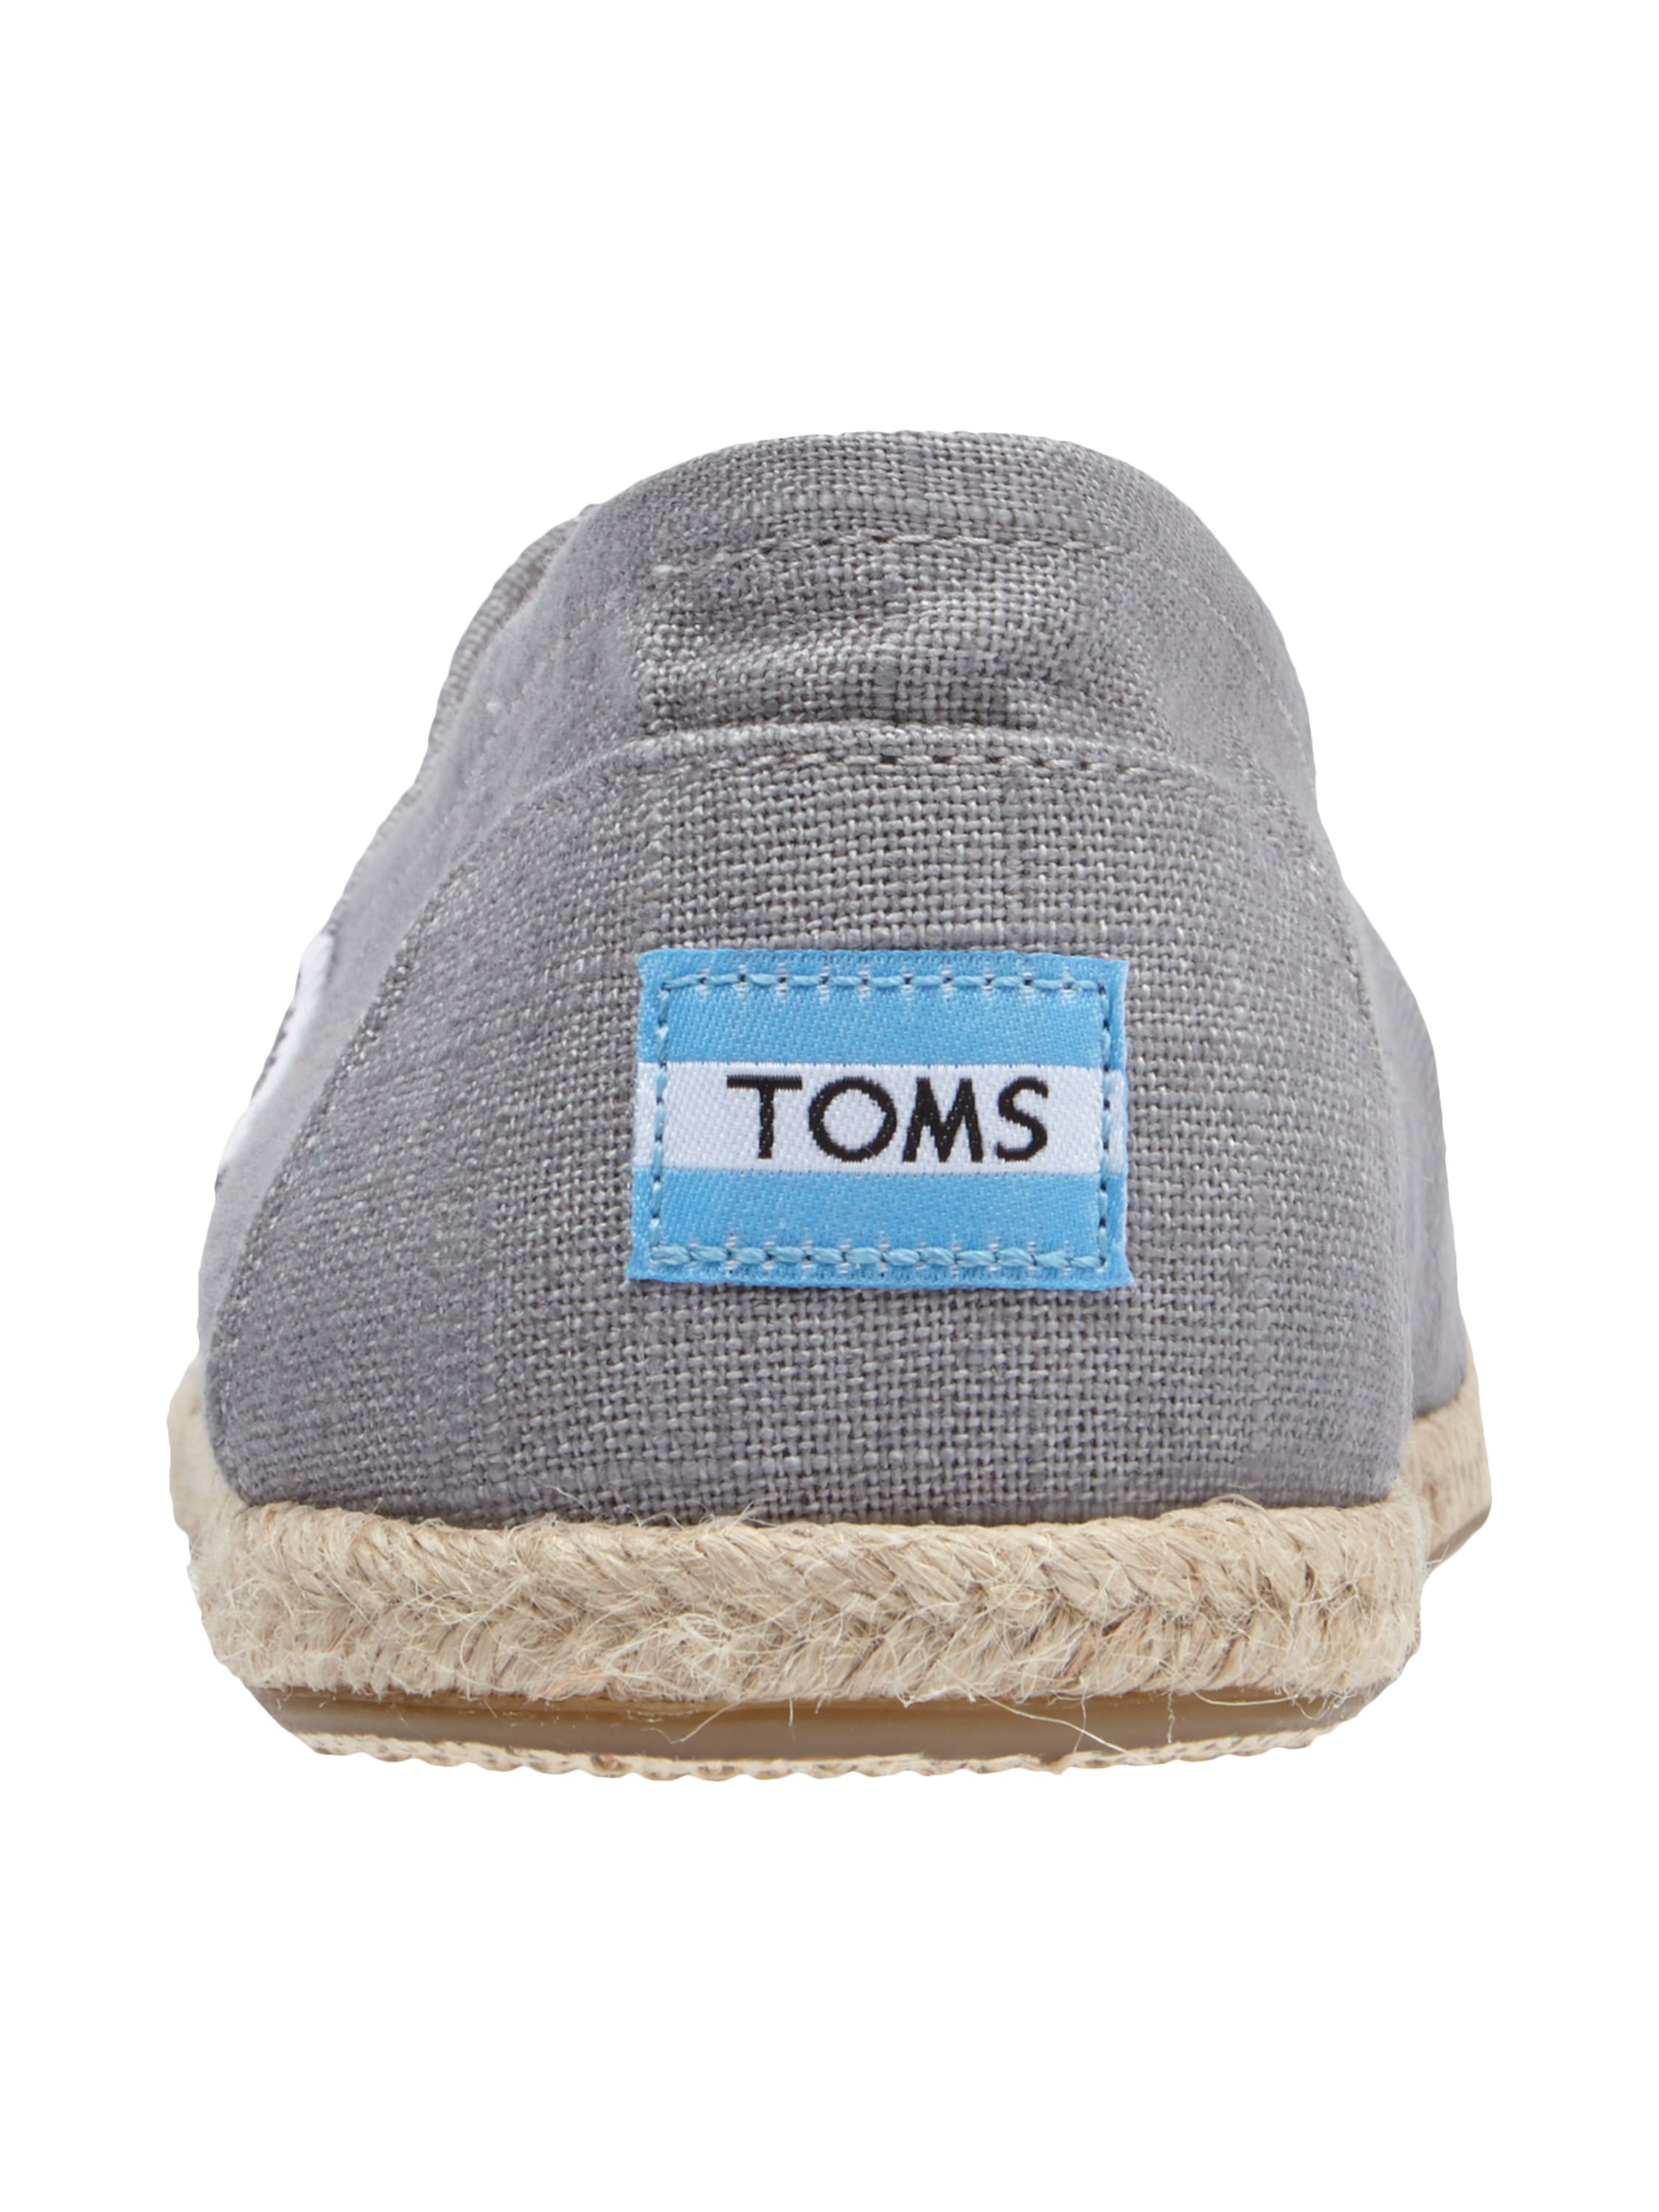 toms espadrilles aus leinen in grau schwarz online kaufen 9446447 p c at online. Black Bedroom Furniture Sets. Home Design Ideas